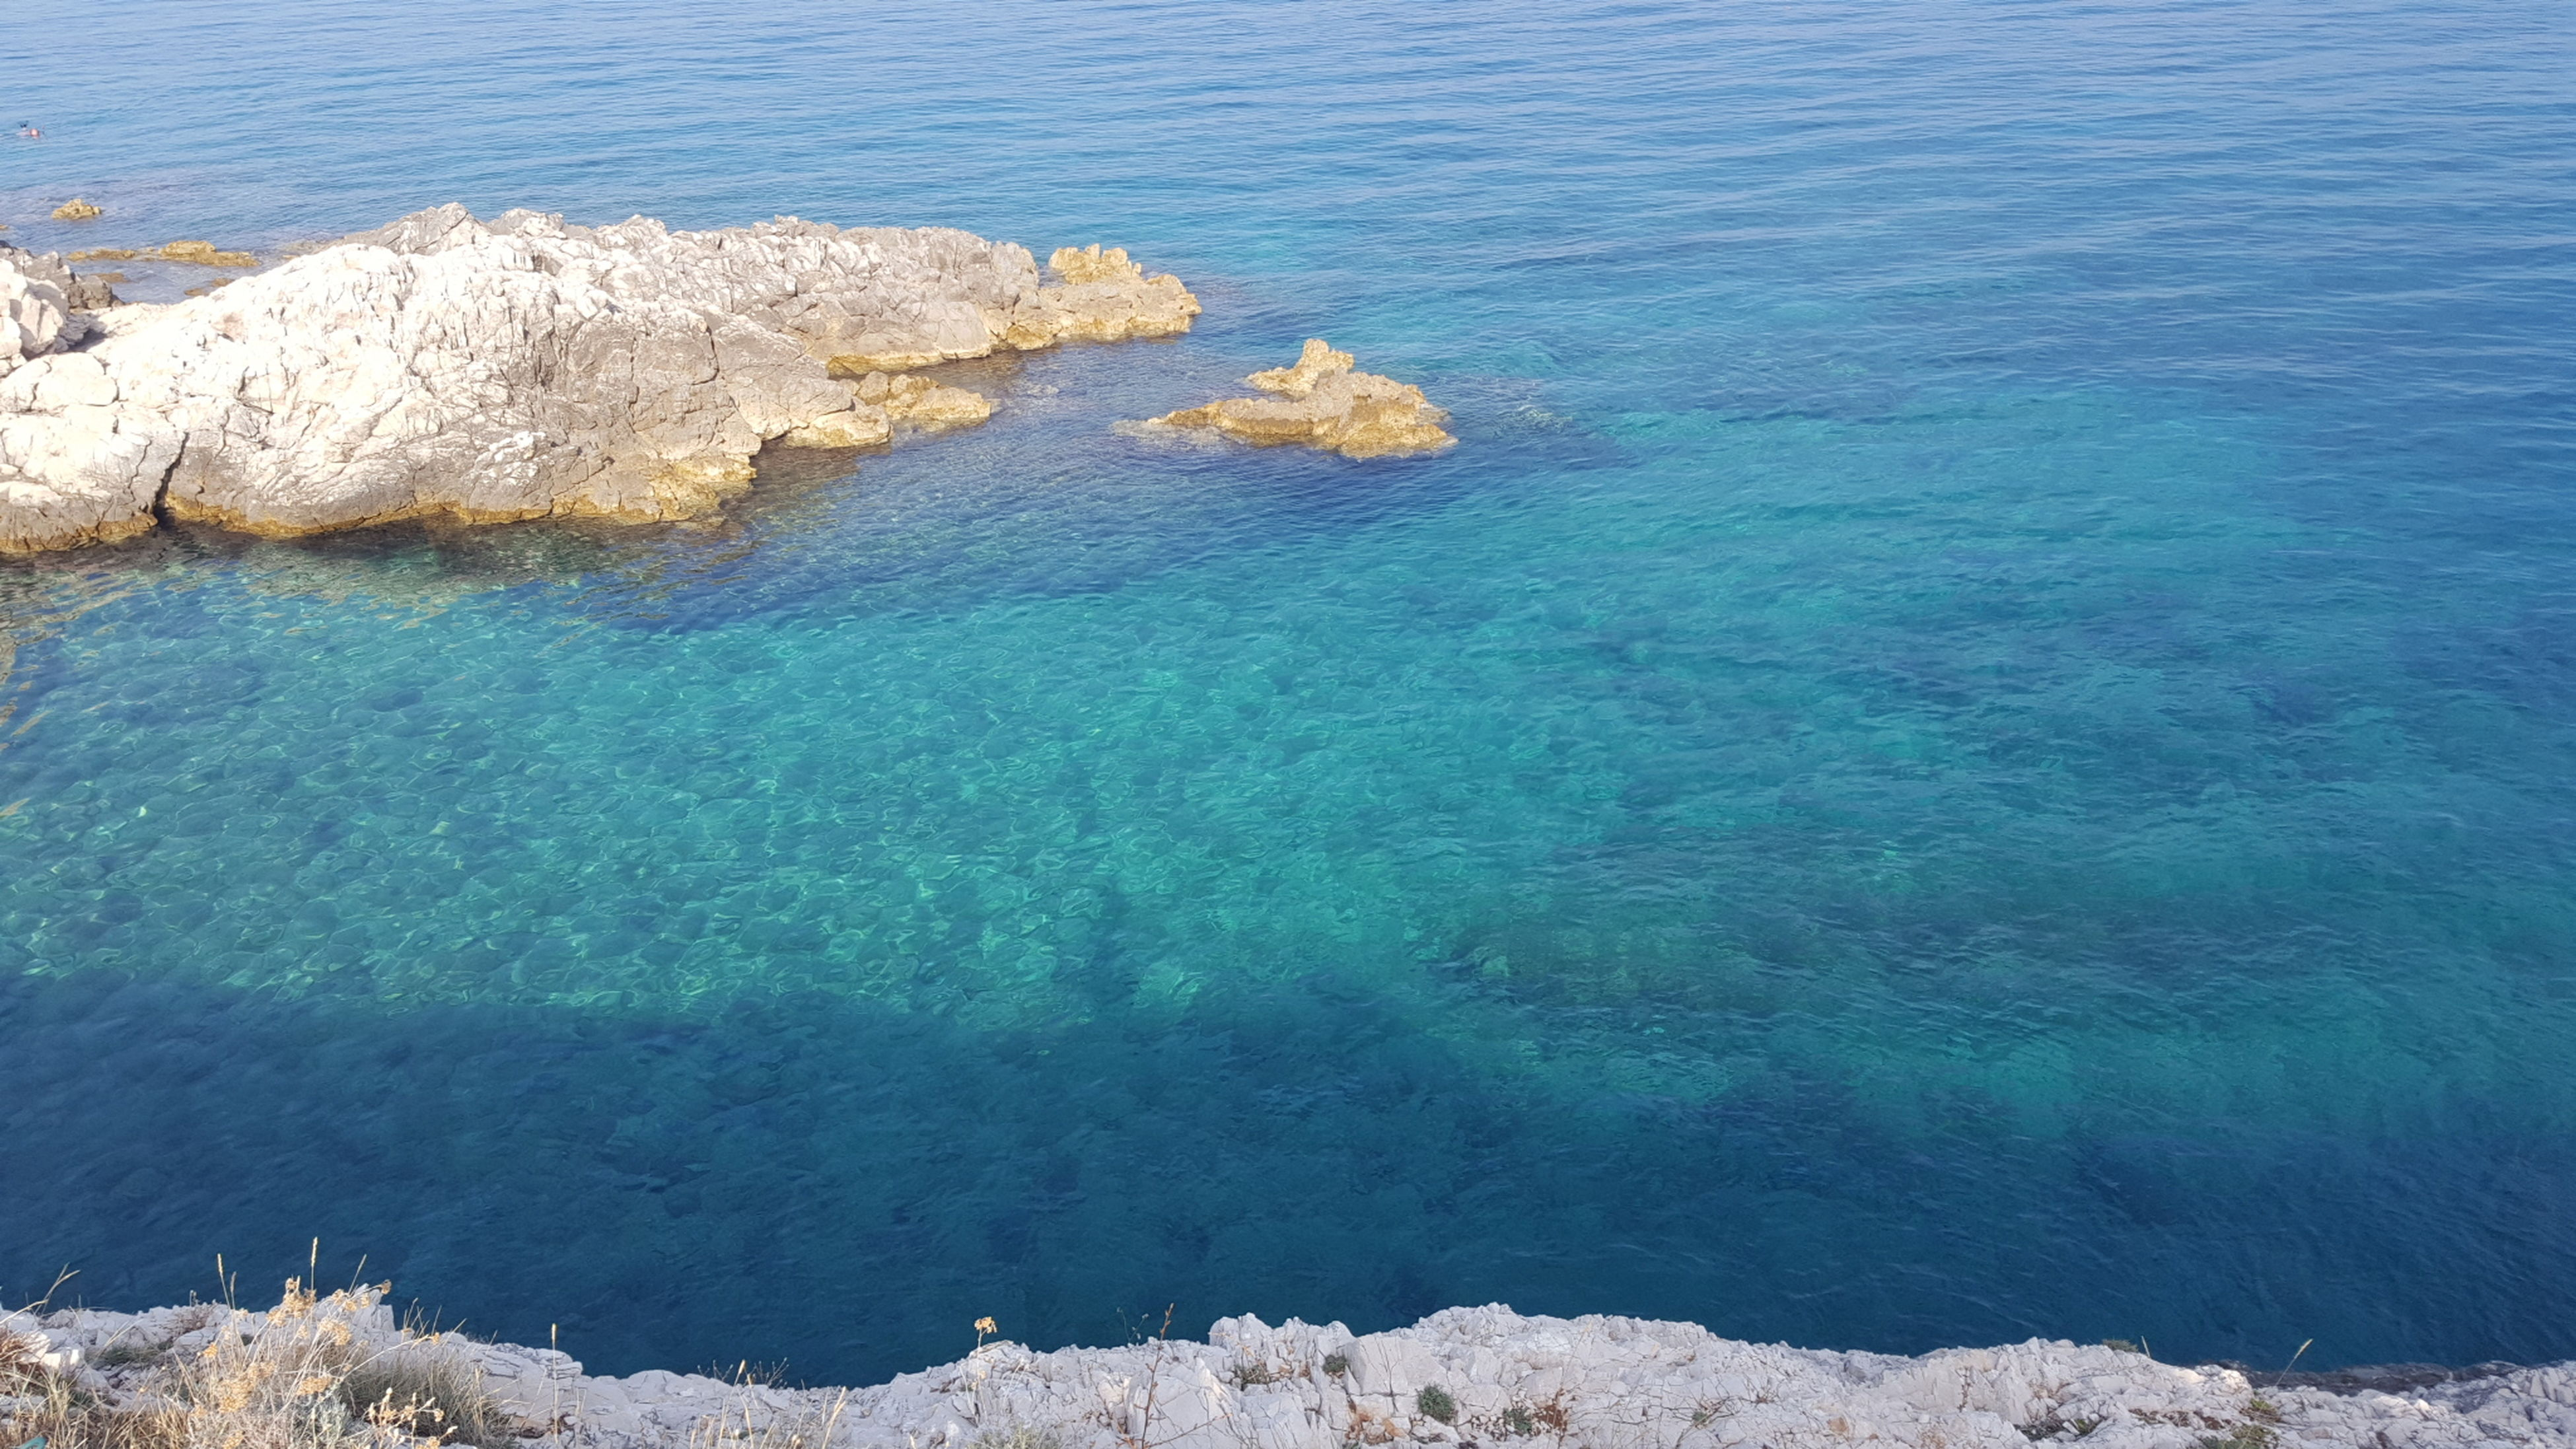 blue, sea, no people, water, nature, beauty in nature, day, scenics, outdoors, underwater, sky, undersea